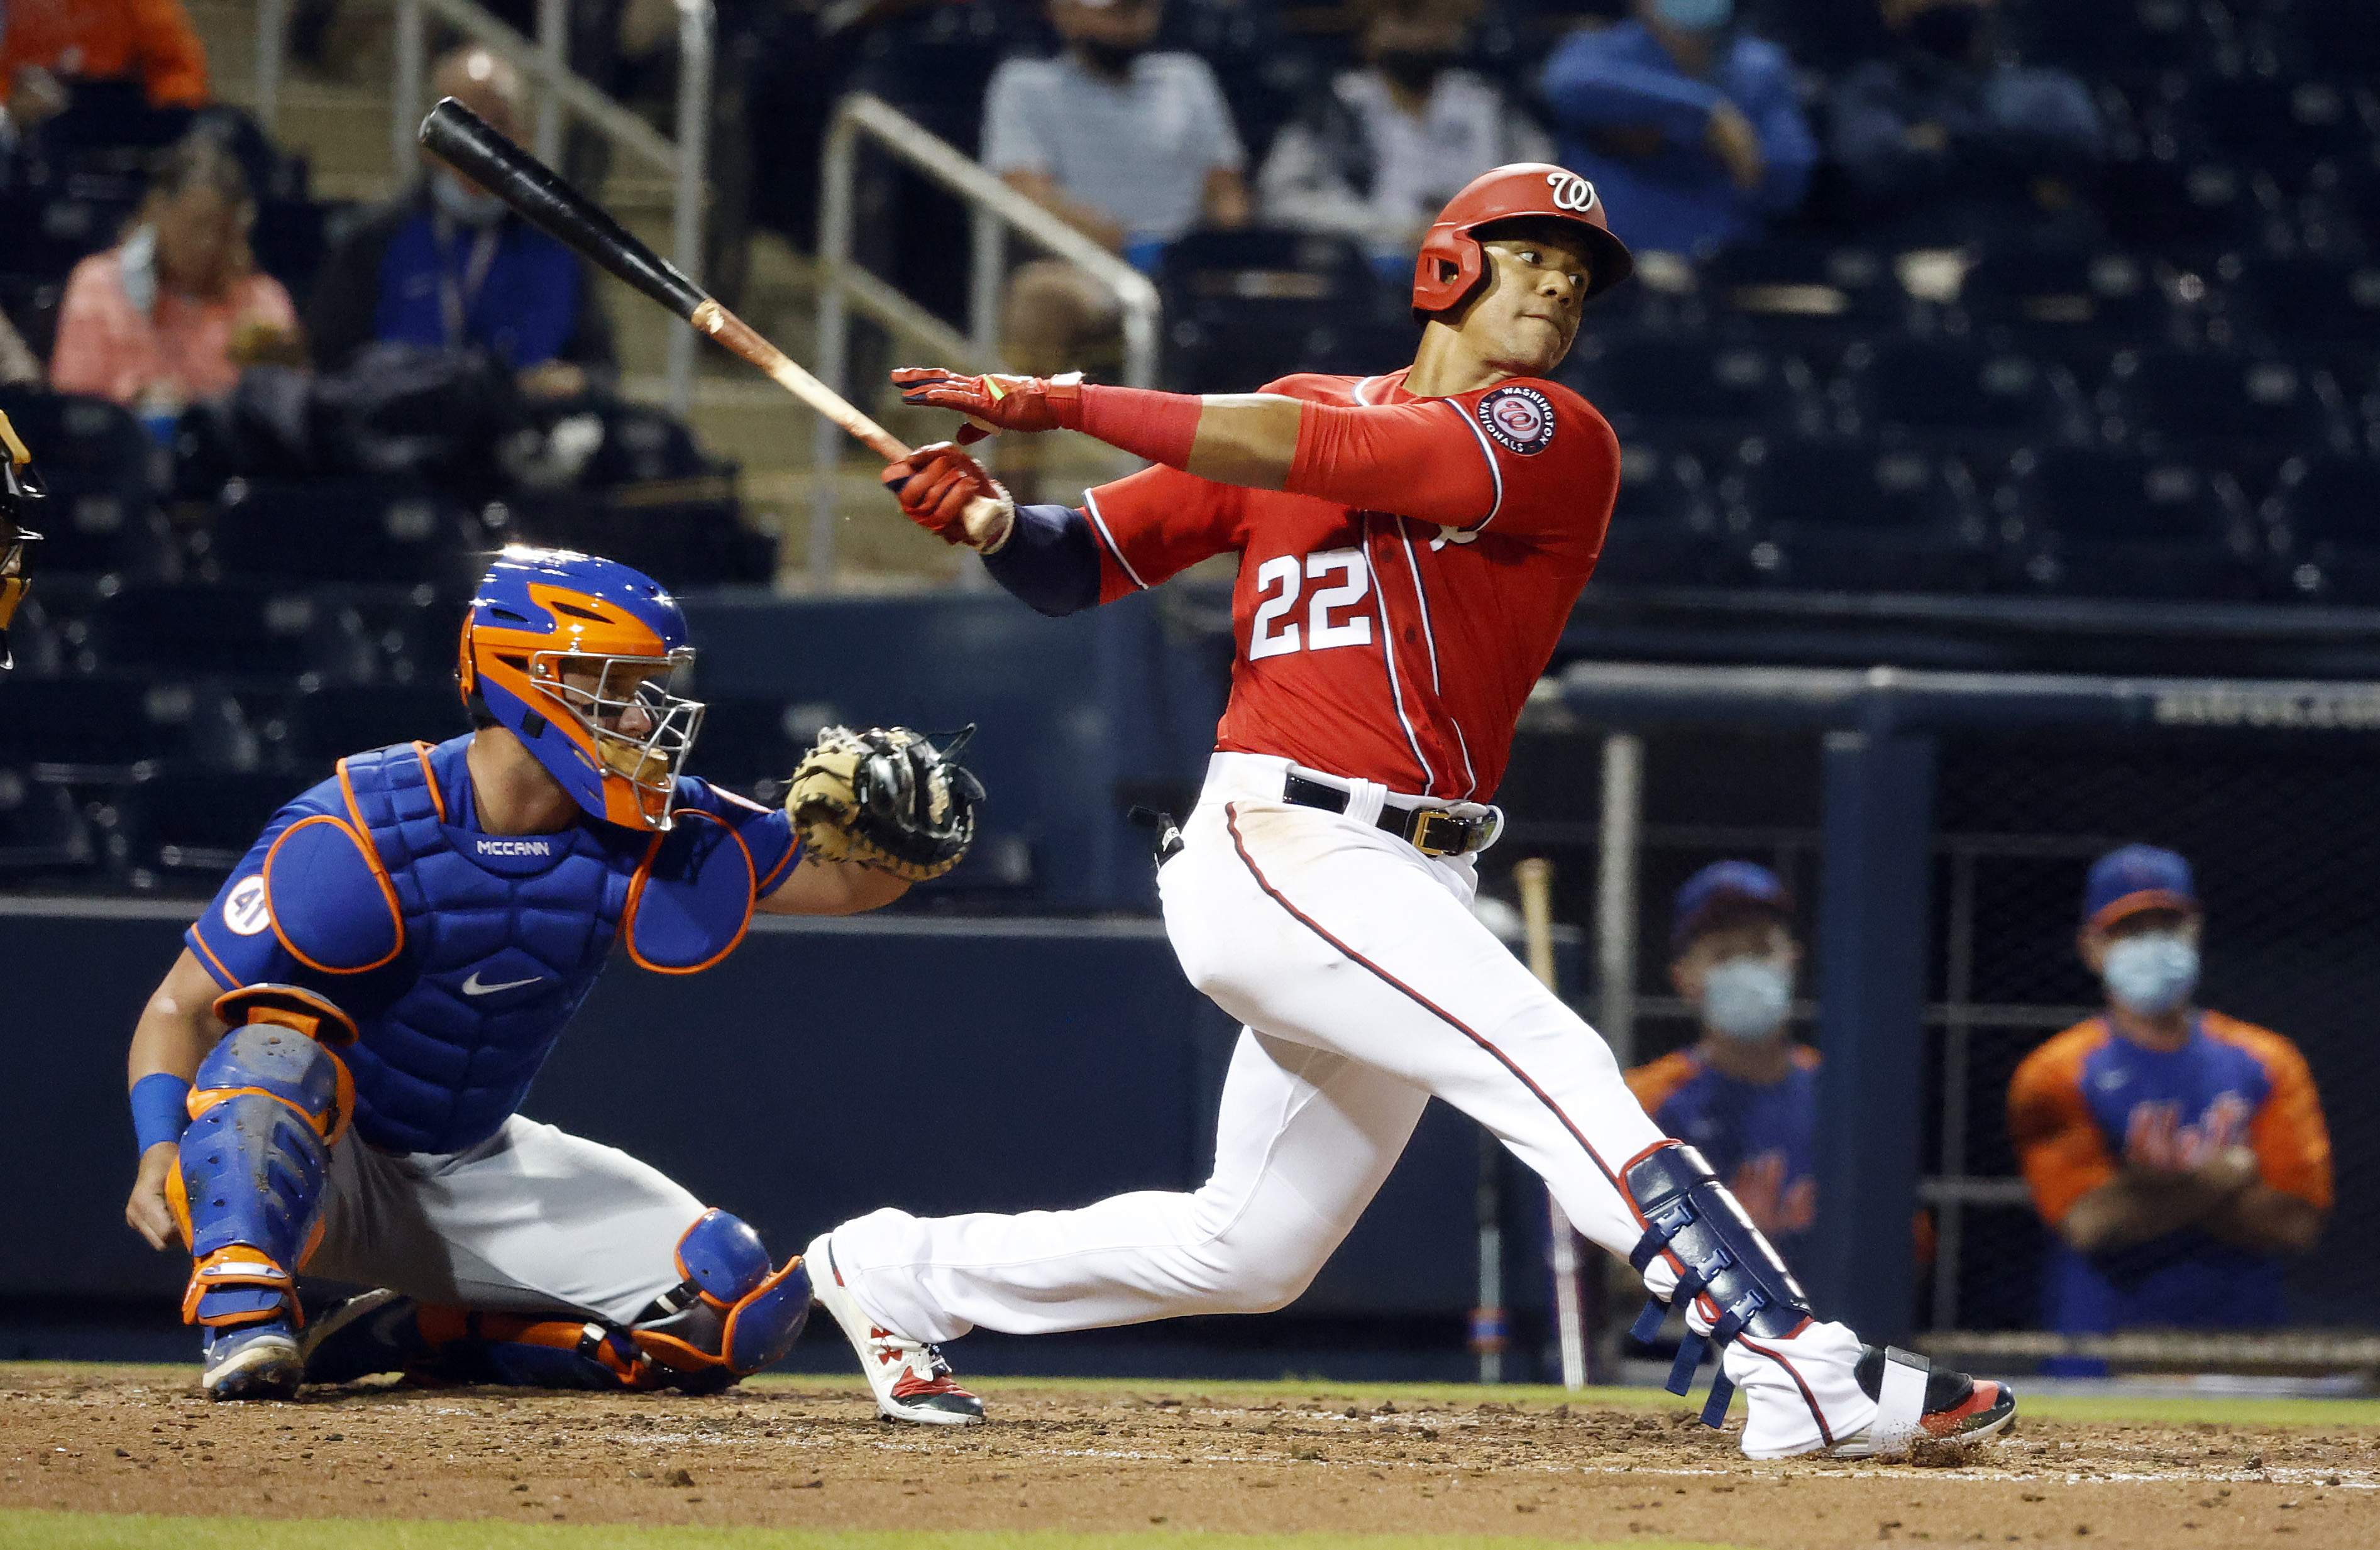 Washington Nationals outfielder Juan Soto at bat against the New York Mets during the third inning of a spring training game at FITTEAM Ballpark of the Palm Beaches.